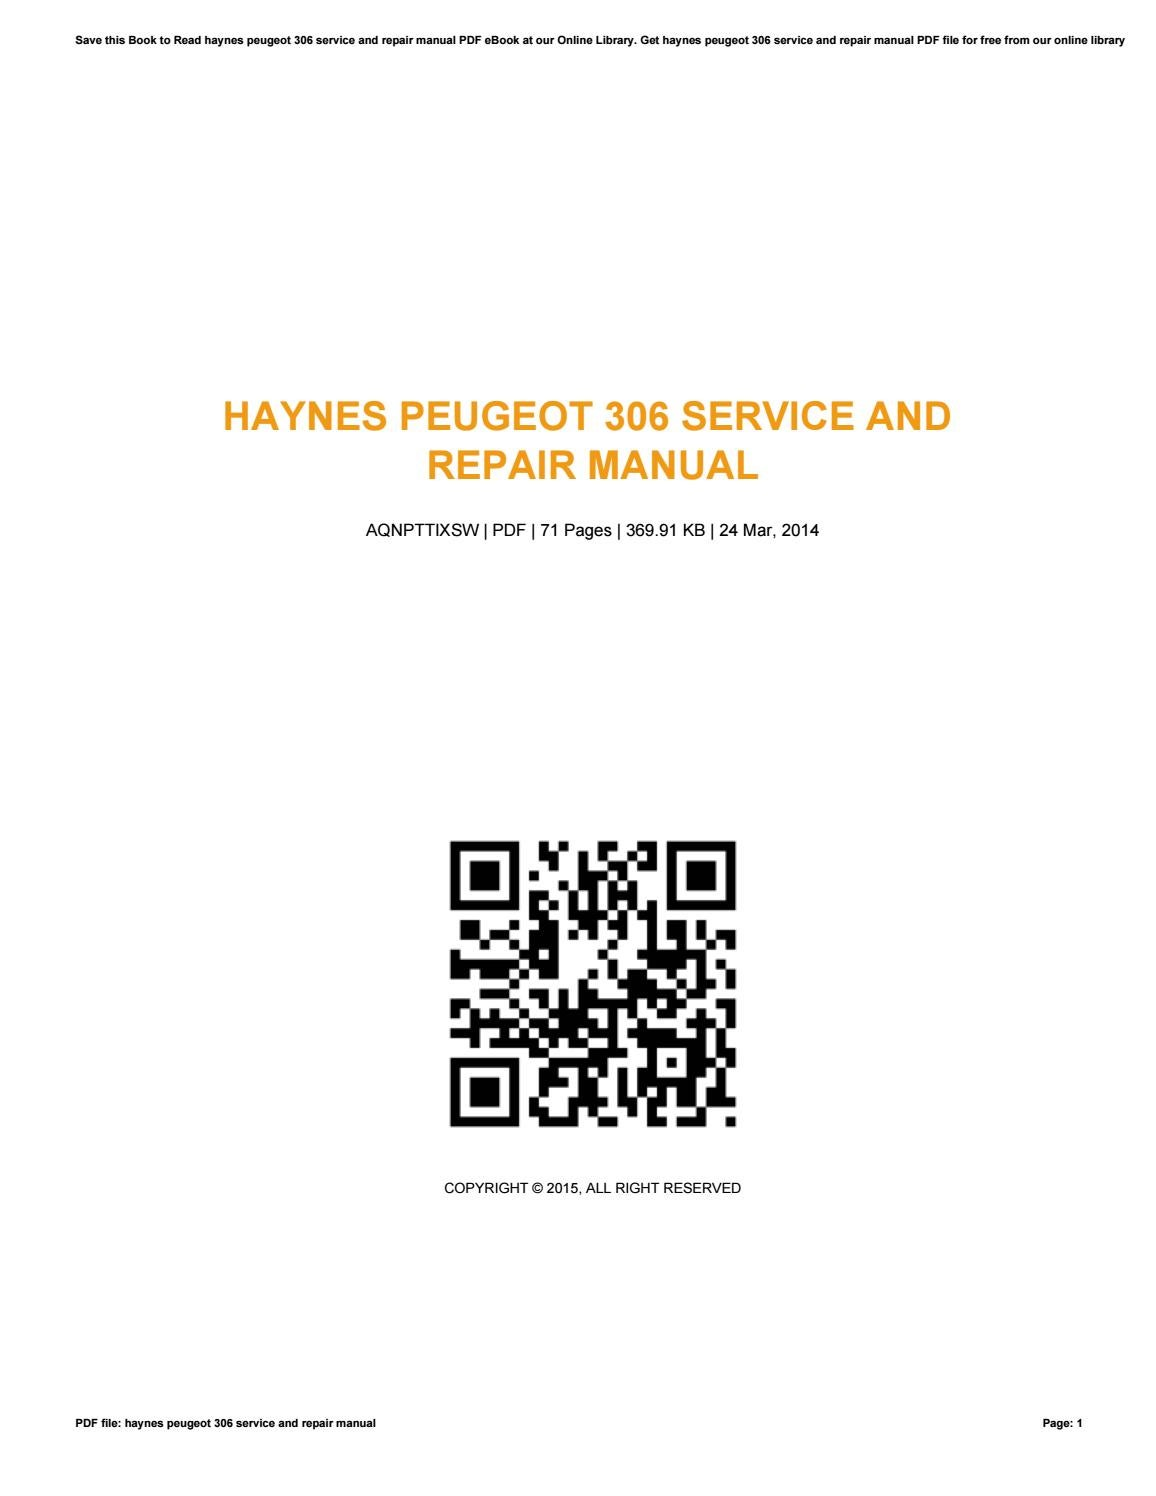 Haynes peugeot 306 service and repair manual by